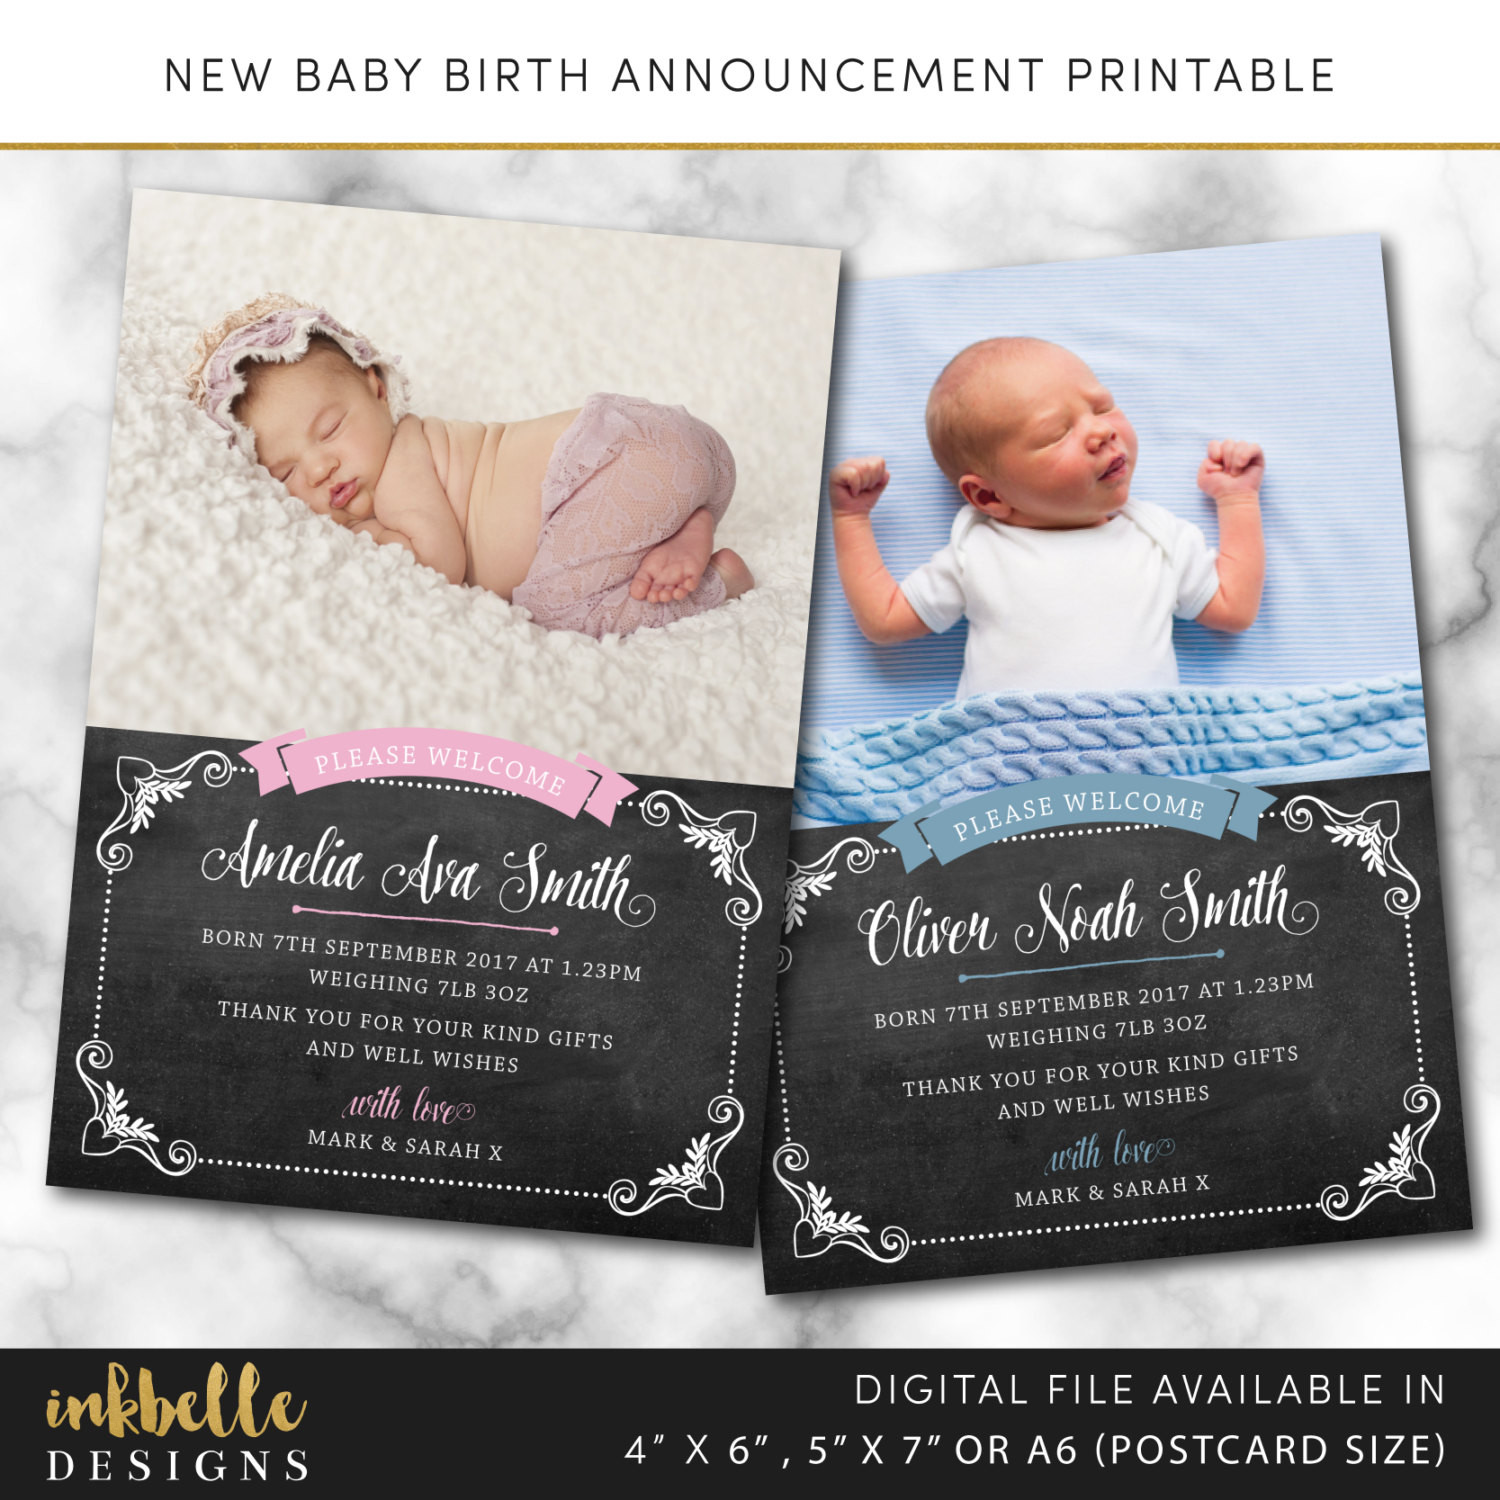 Best ideas about DIY Baby Announcement . Save or Pin Birth announcement card Digital File PDF DIY baby thank Now.